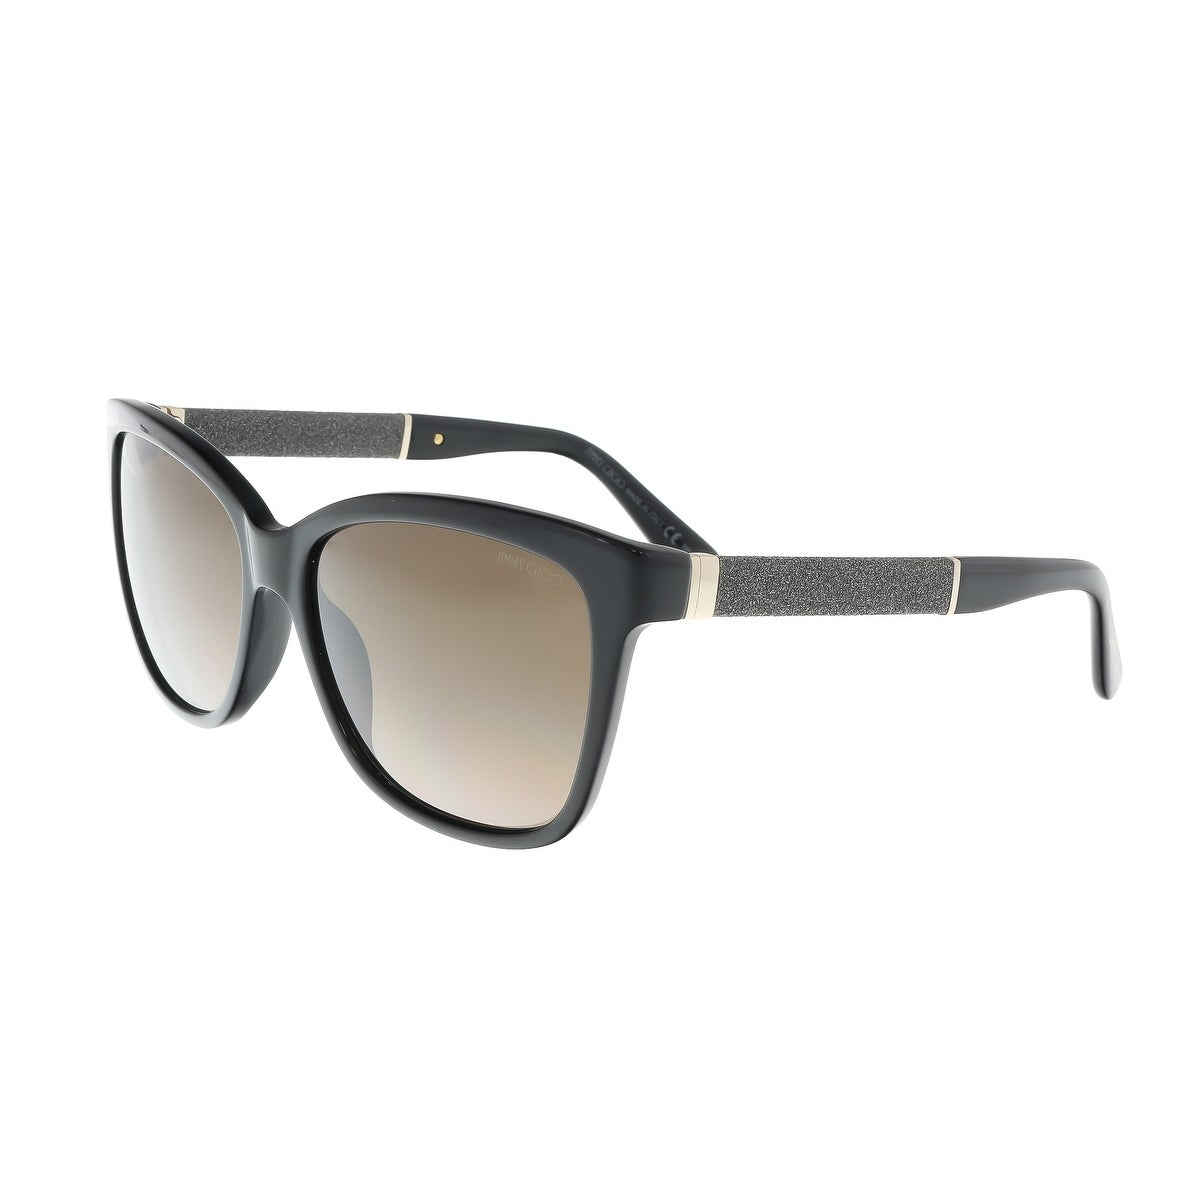 aef4594baa3db Shop Jimmy Choo Cora S 0FA3 Black Square Sunglasses - Free Shipping Today -  Overstock - 16801580